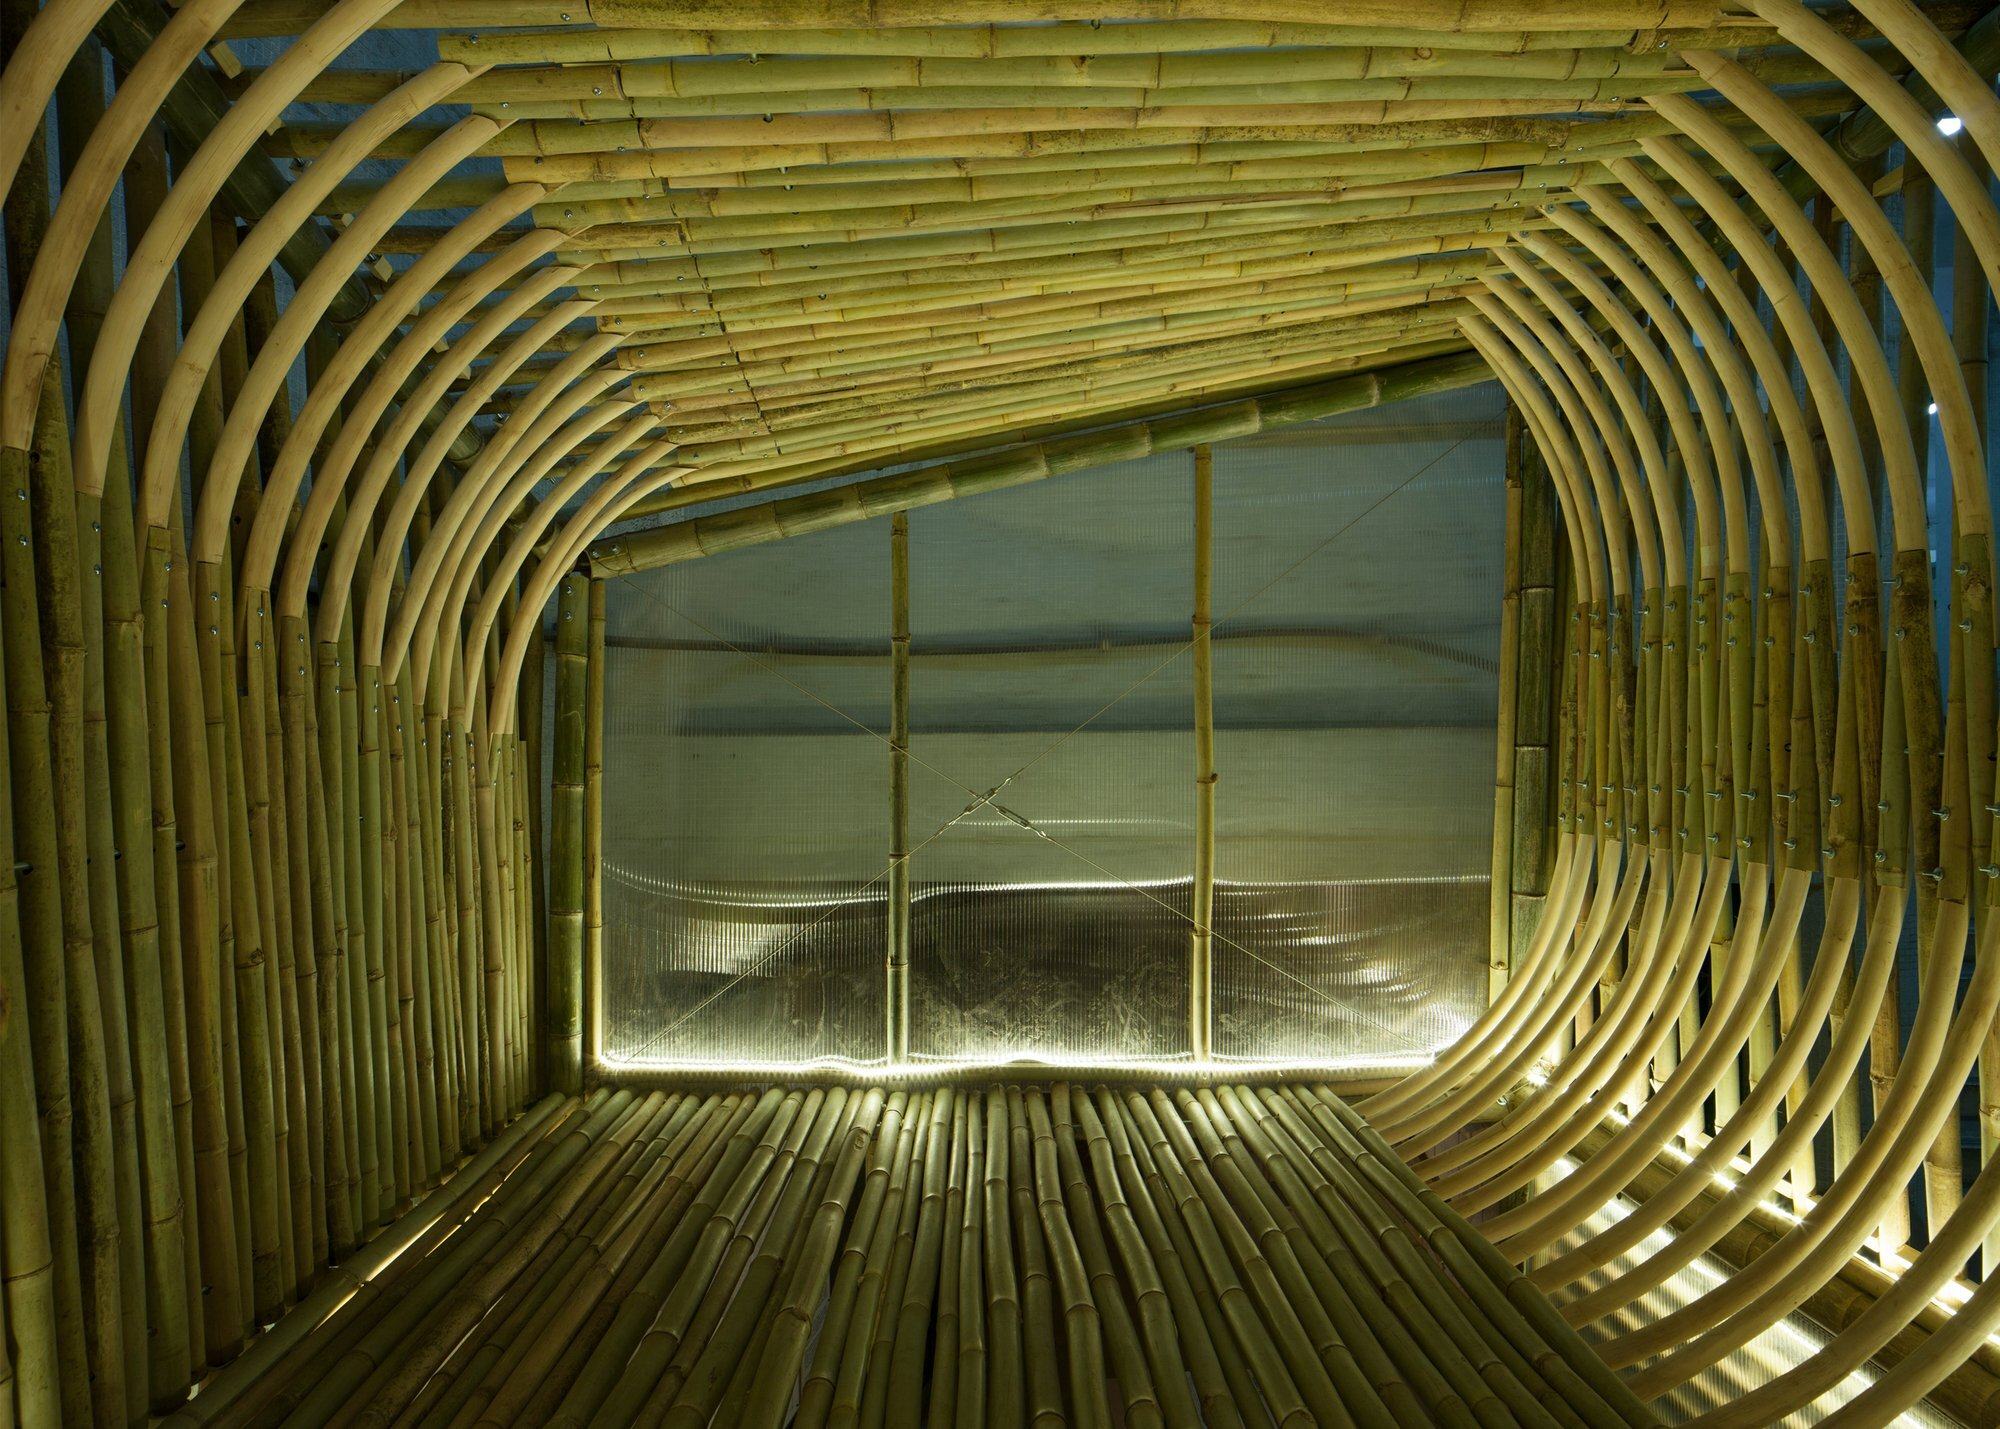 Bamboo Micro Houses Proposal - AFFECT-T - Micro House - Loft at Night- Humble Homes